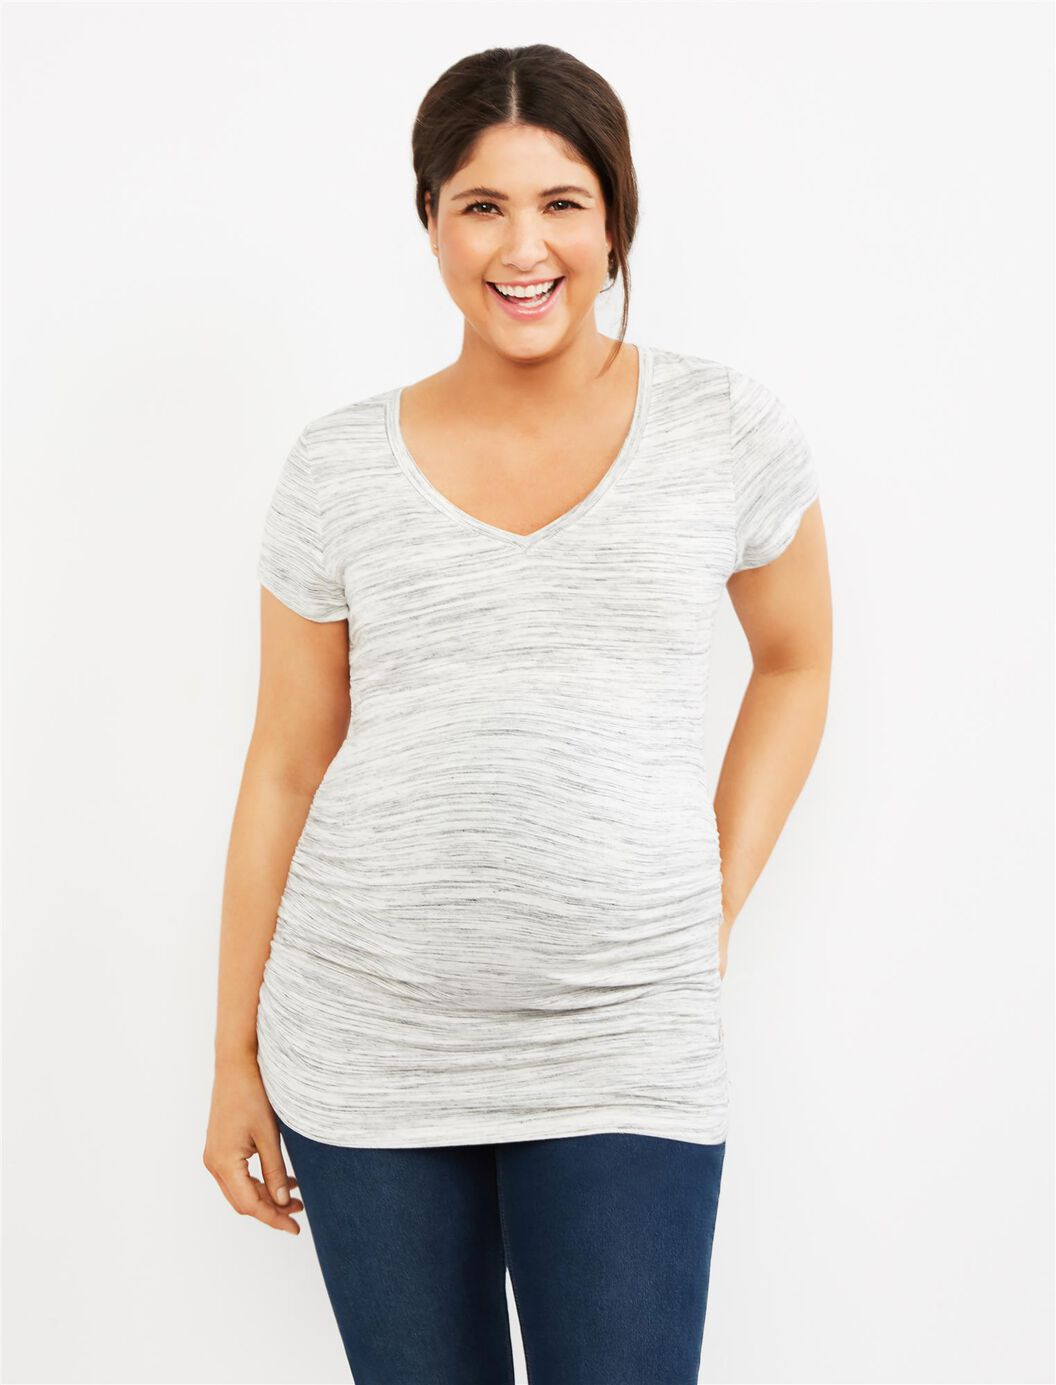 Spacedye Side Ruched Maternity Tee- Grey at Motherhood Maternity in Victor, NY   Tuggl